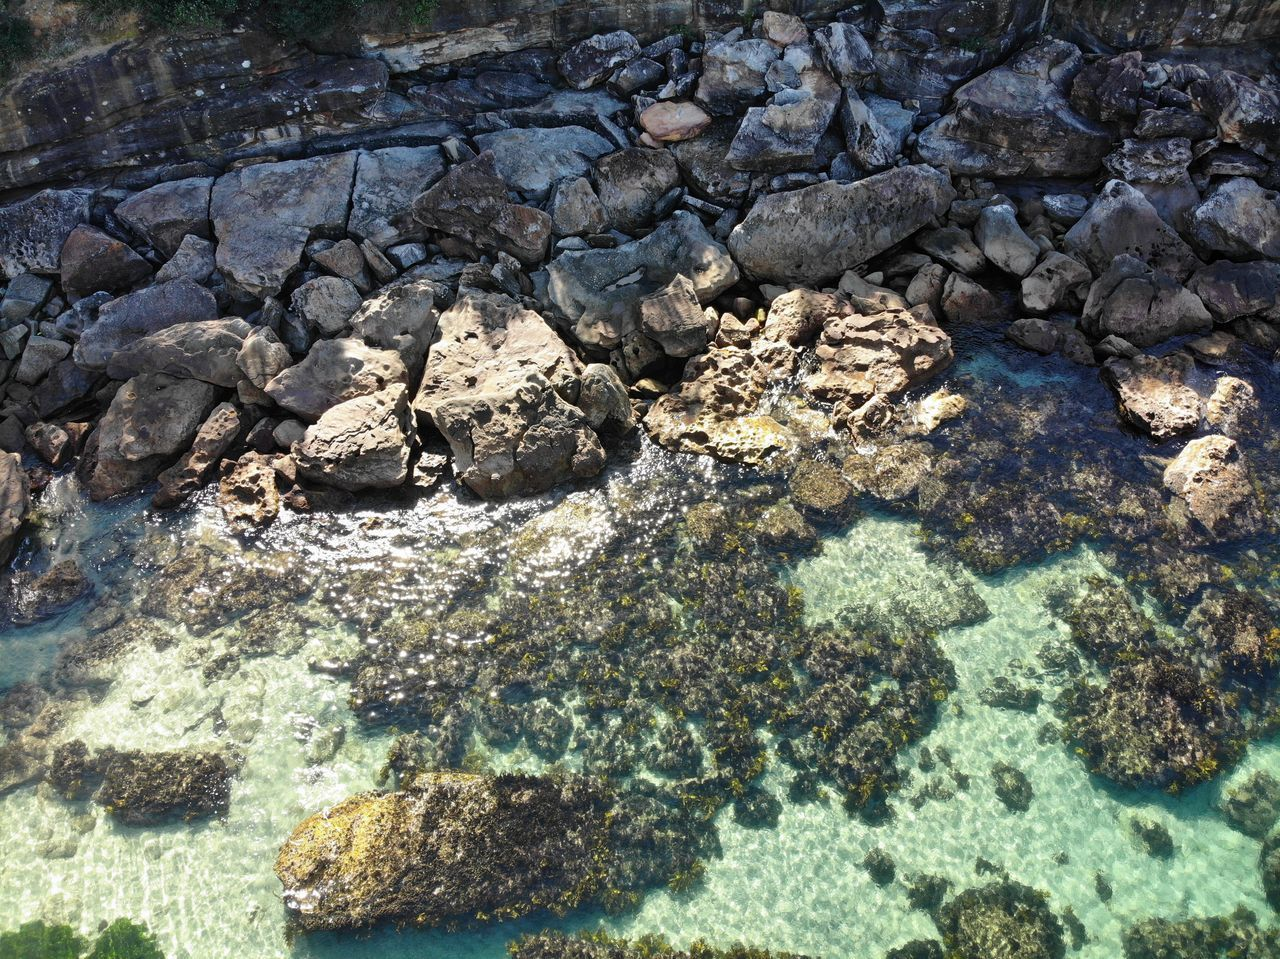 water, rock, solid, rock - object, nature, no people, sea, day, animals in the wild, high angle view, animal, textured, underwater, animal wildlife, animal themes, geology, outdoors, sea life, transparent, marine, purity, shallow